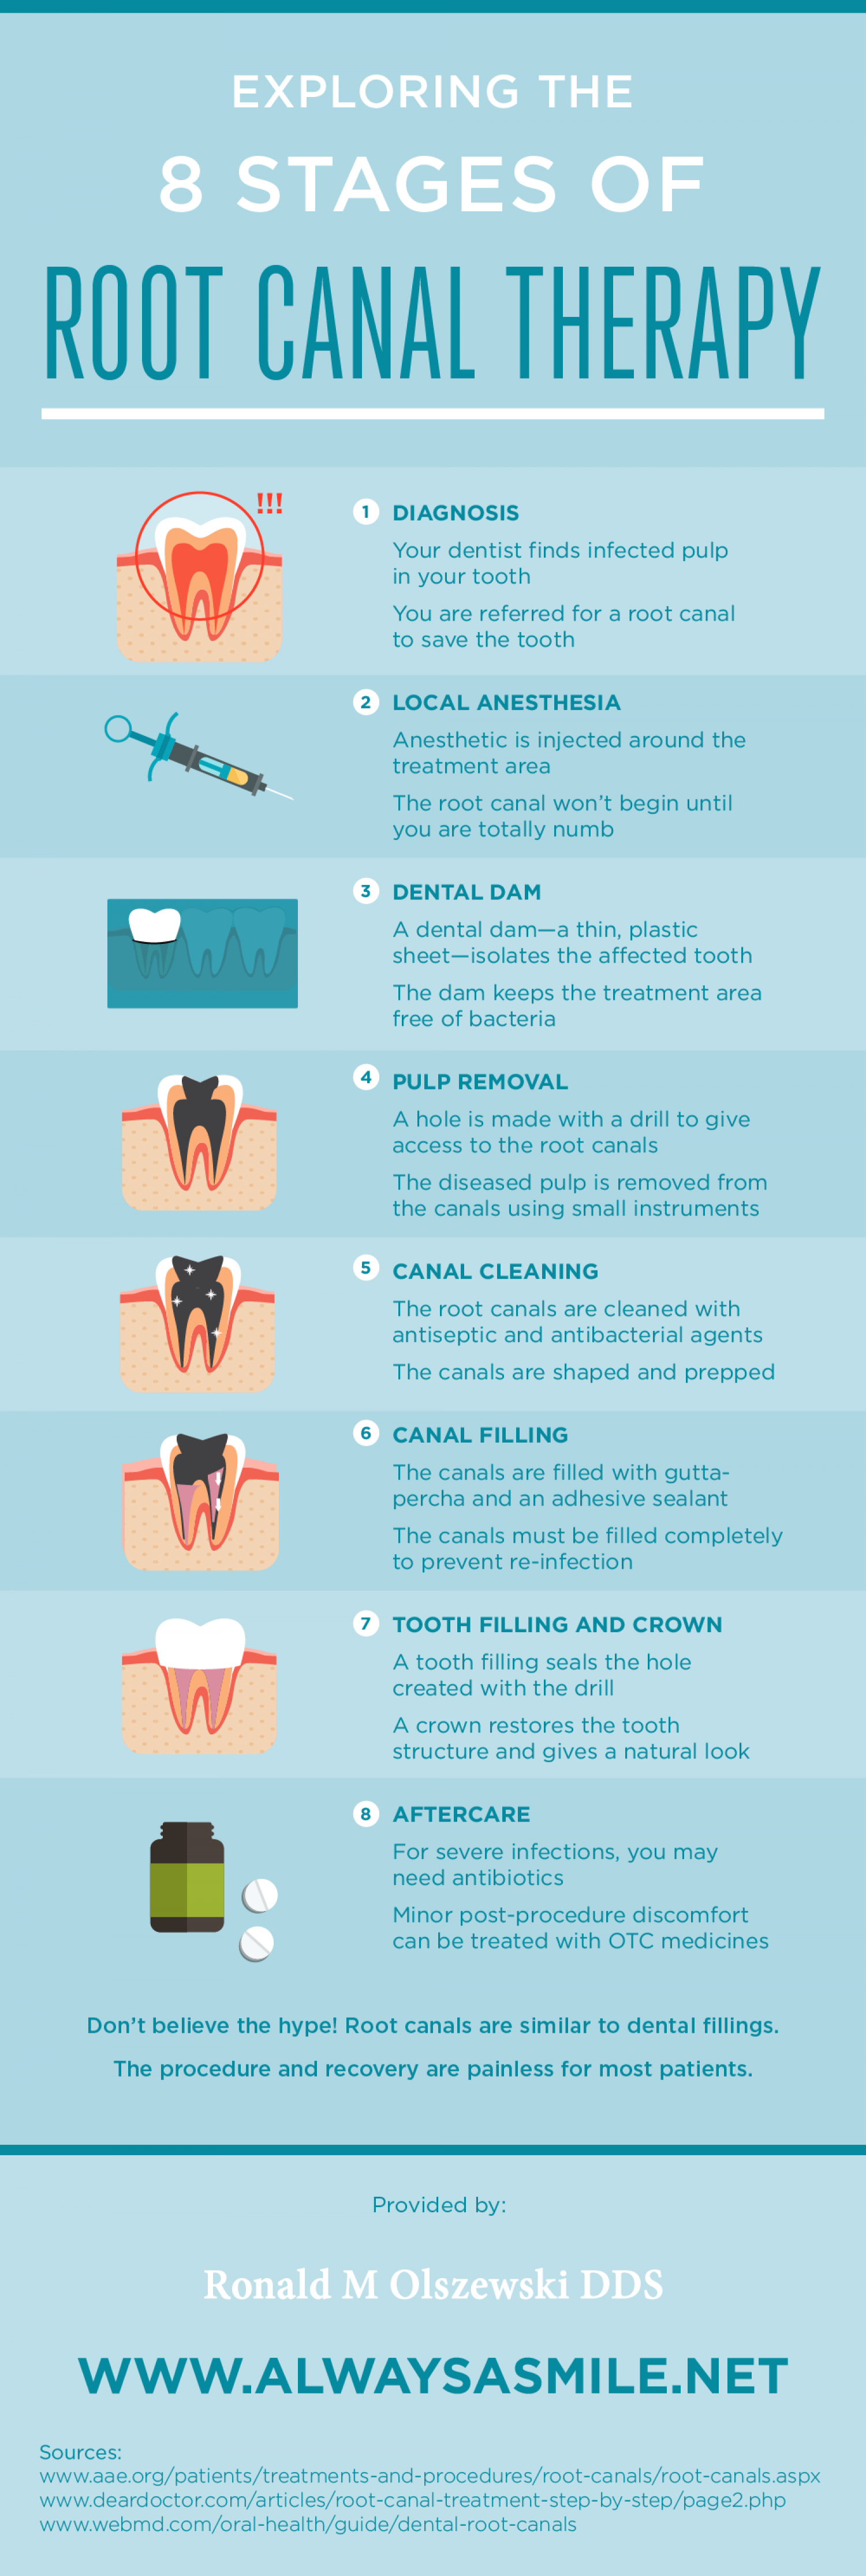 Exploring the 8 Stages of Root Canal Therapy Infographic